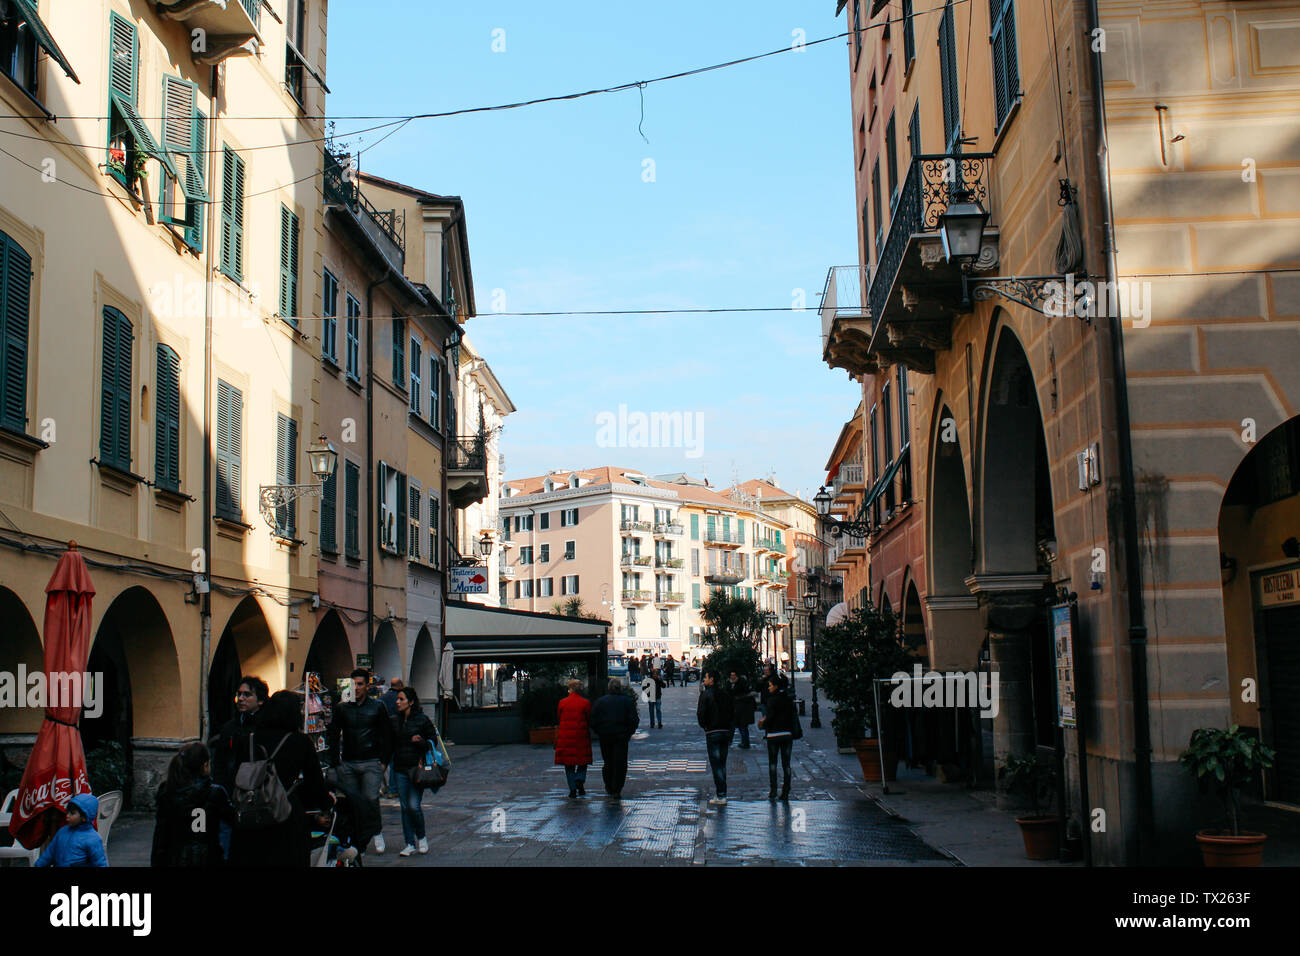 Rapallo, Italy - 03 27 2013: people, walking tourists, View of the streets of Rapallo - Stock Image